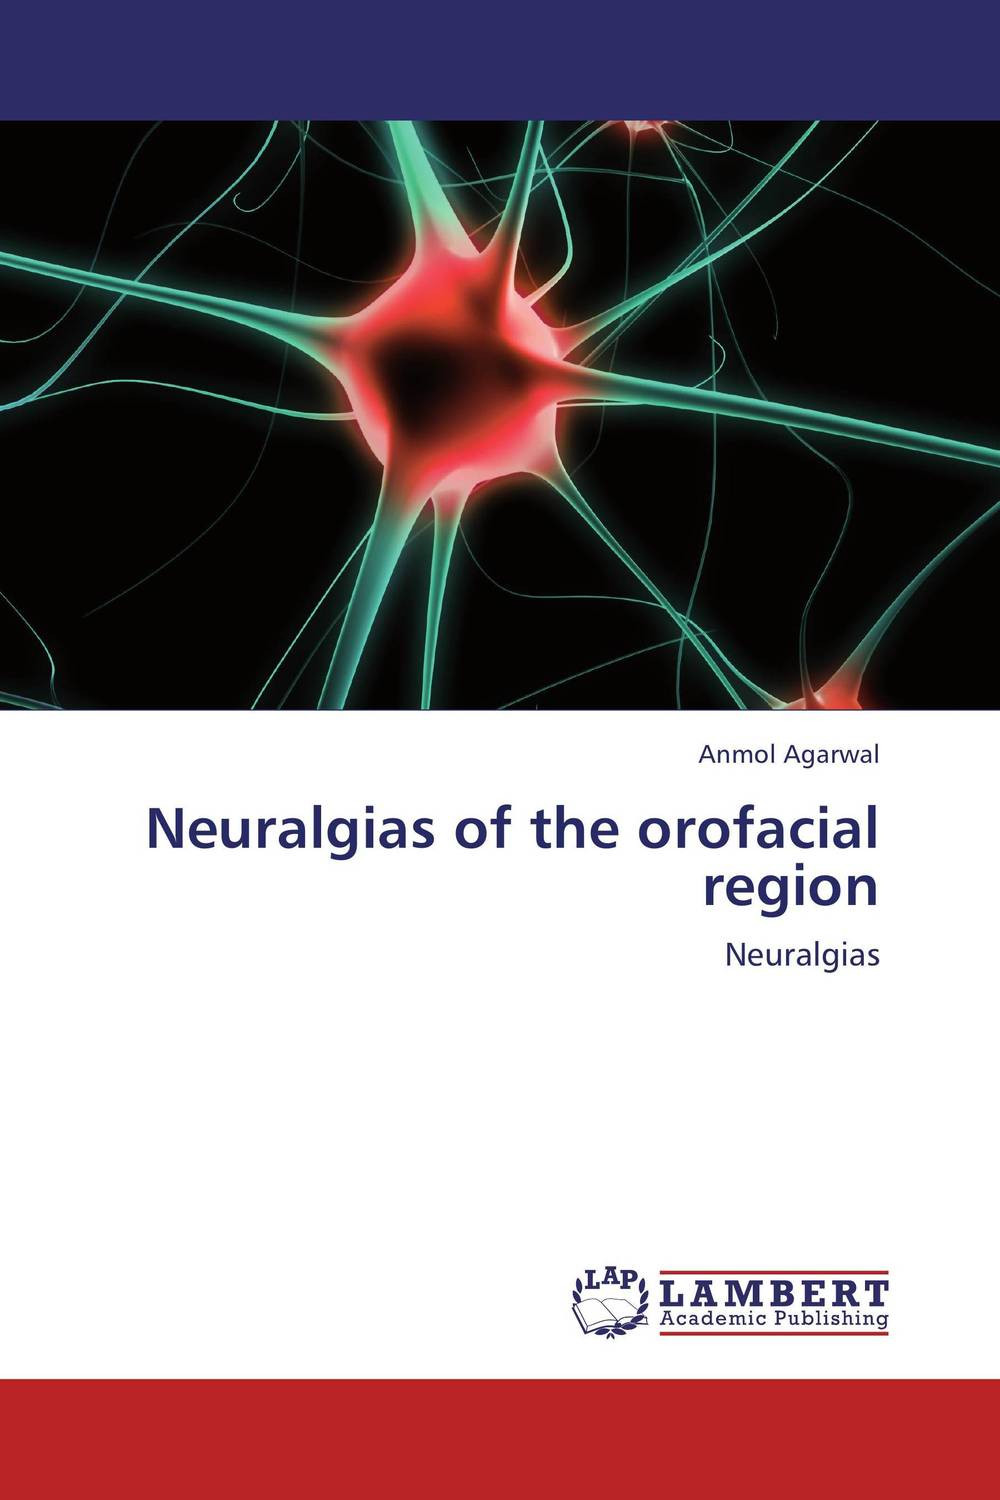 Neuralgias of the orofacial region neuralgias of the orofacial region